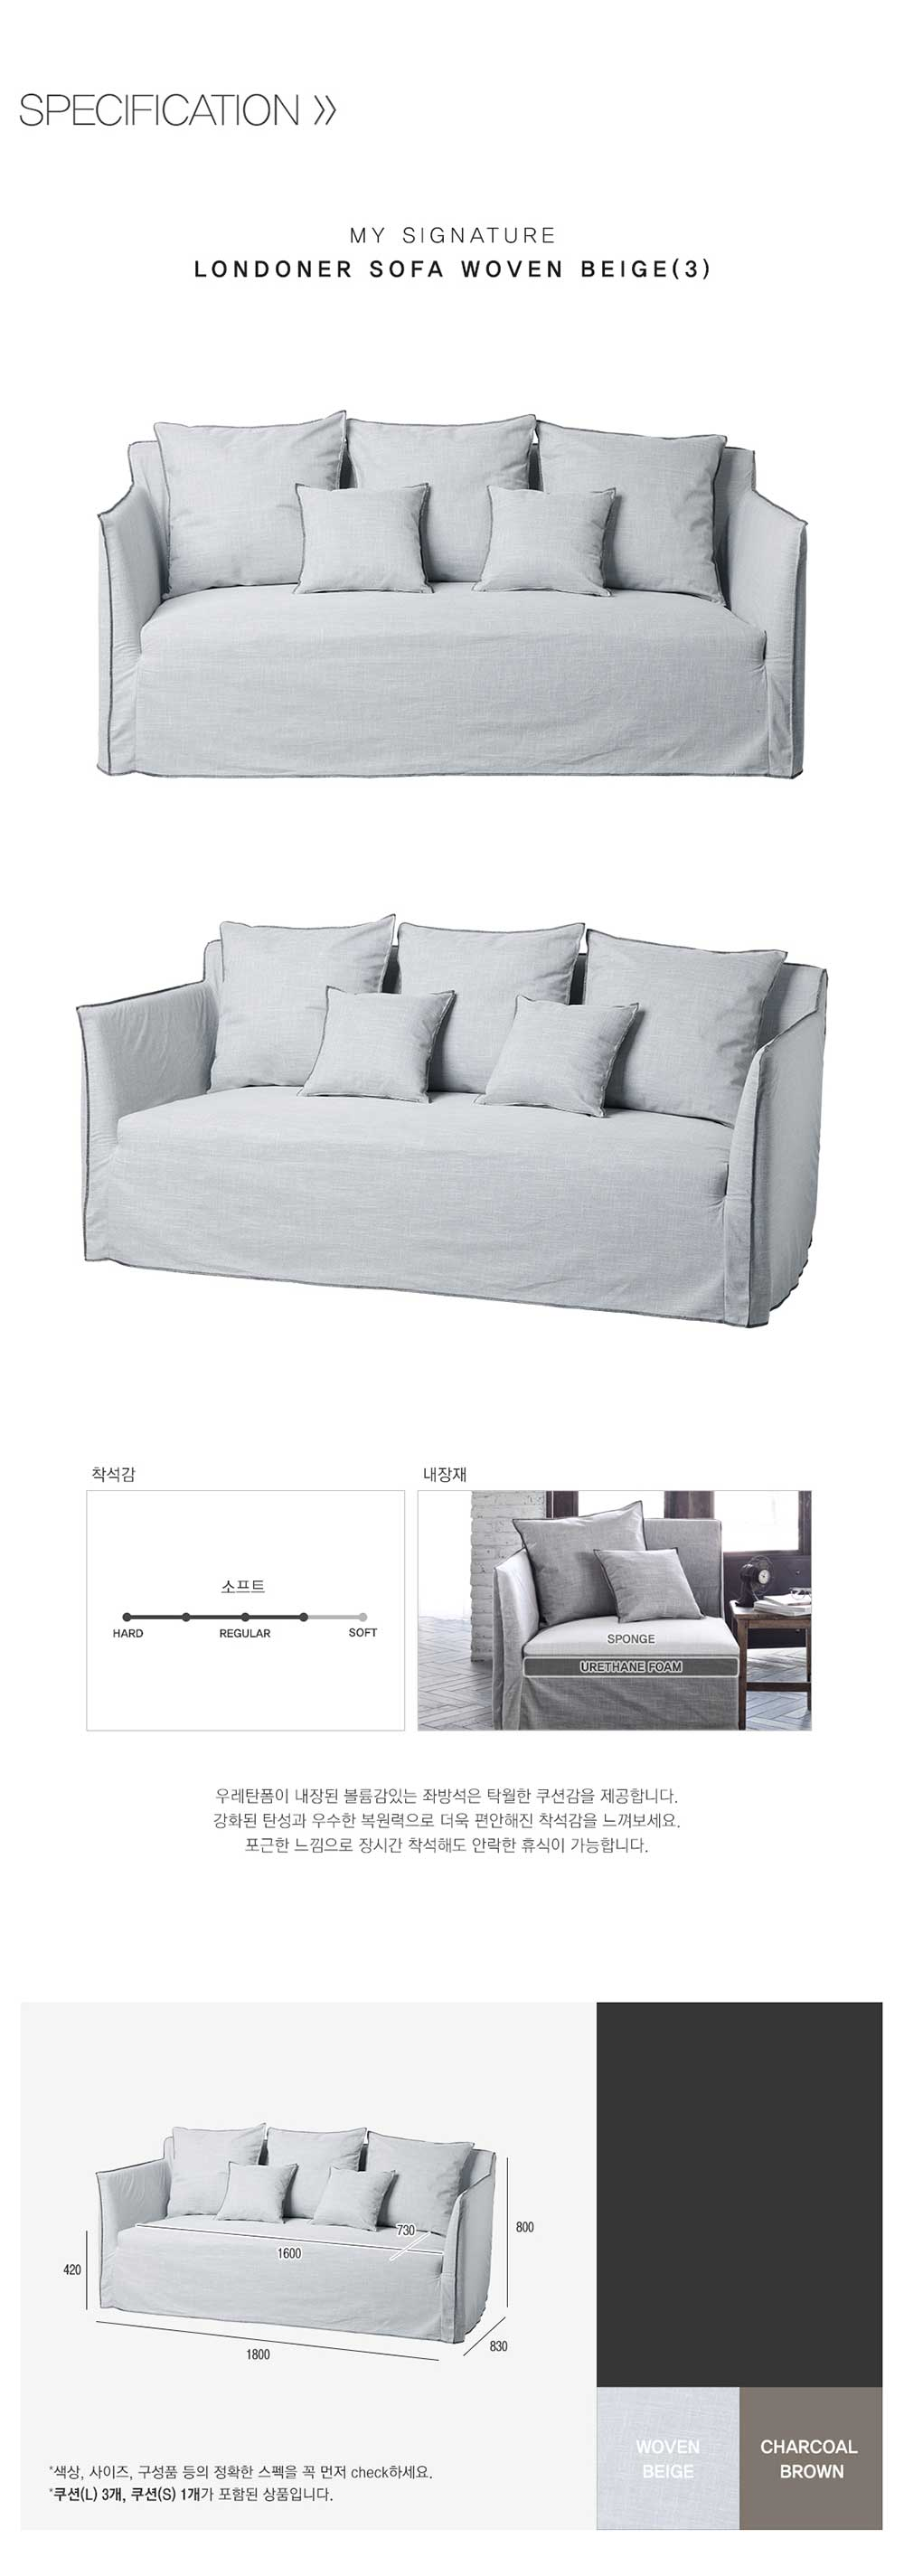 Londoner_Kinfolk_Industrial_Sofa_(Woven Beige)_Online_Furniture_Singapore_Specs_by_born_in_colour